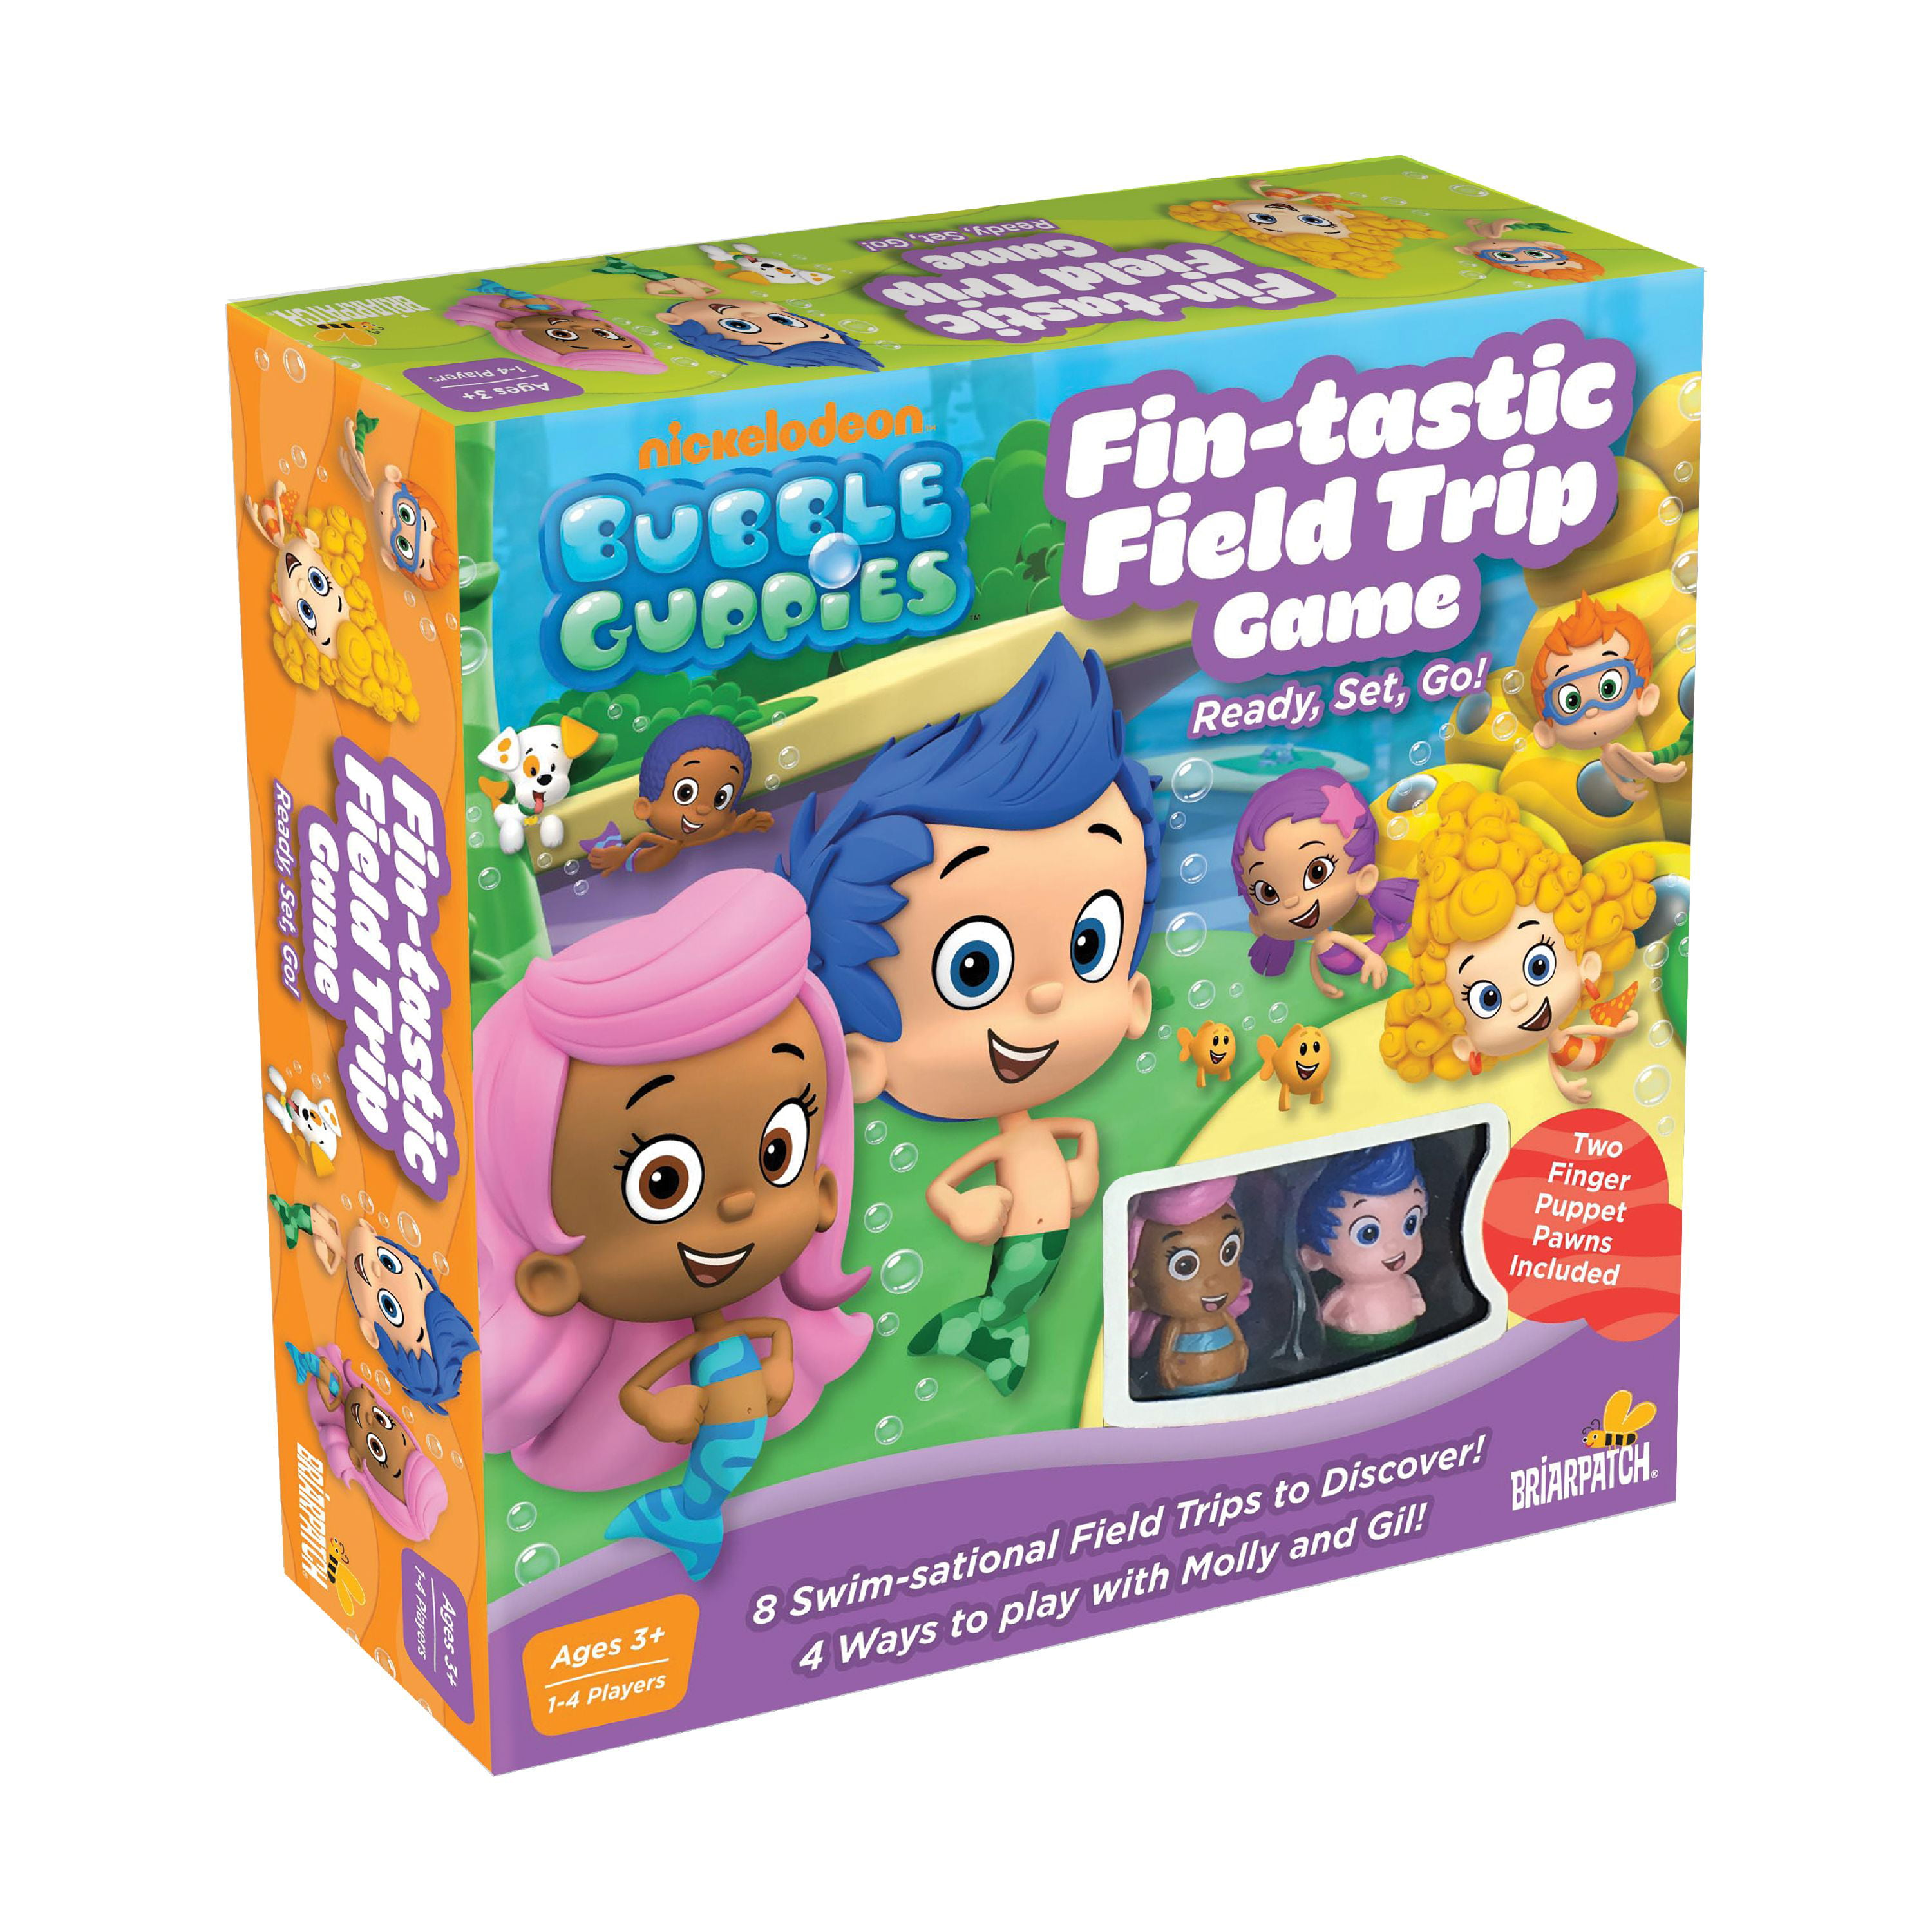 BUBBLE GUPPIES Fin-tastic Field Trip Board Game Review ...